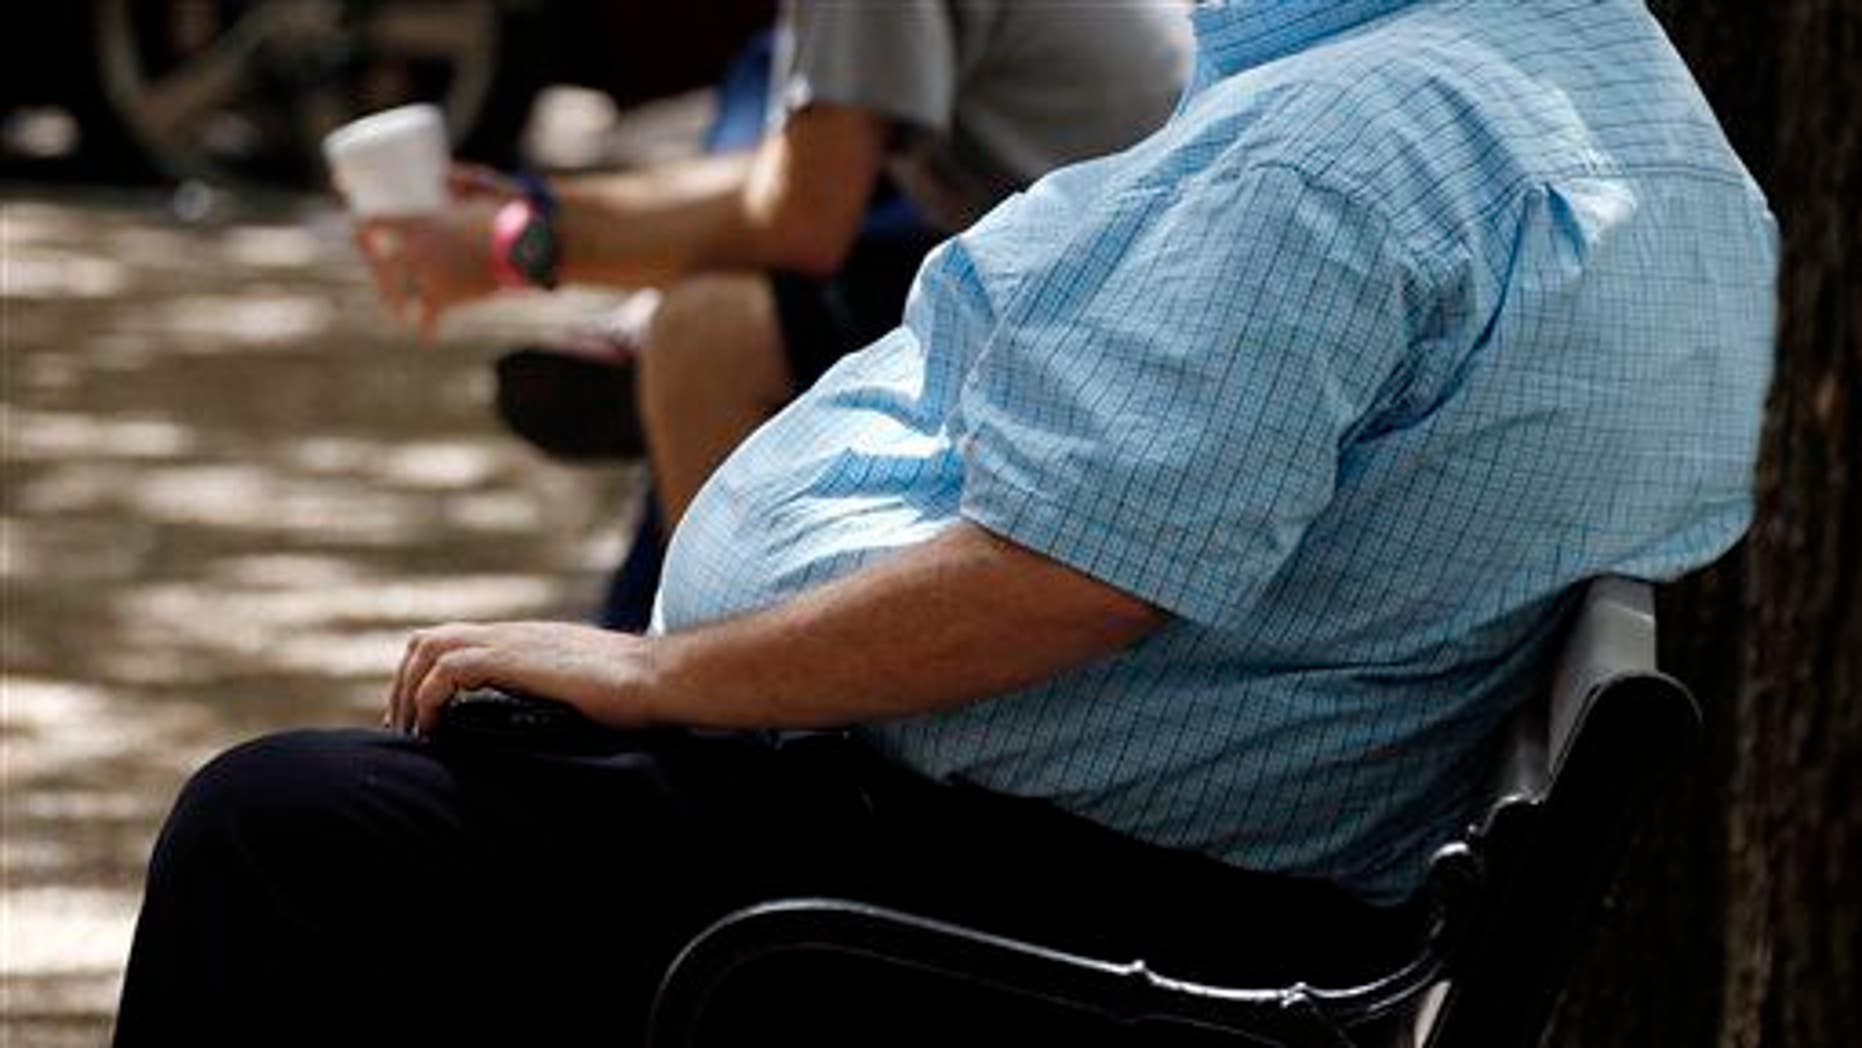 A heavyset man rests on a bench in Jackson, Miss., Sept. 4, 2014.